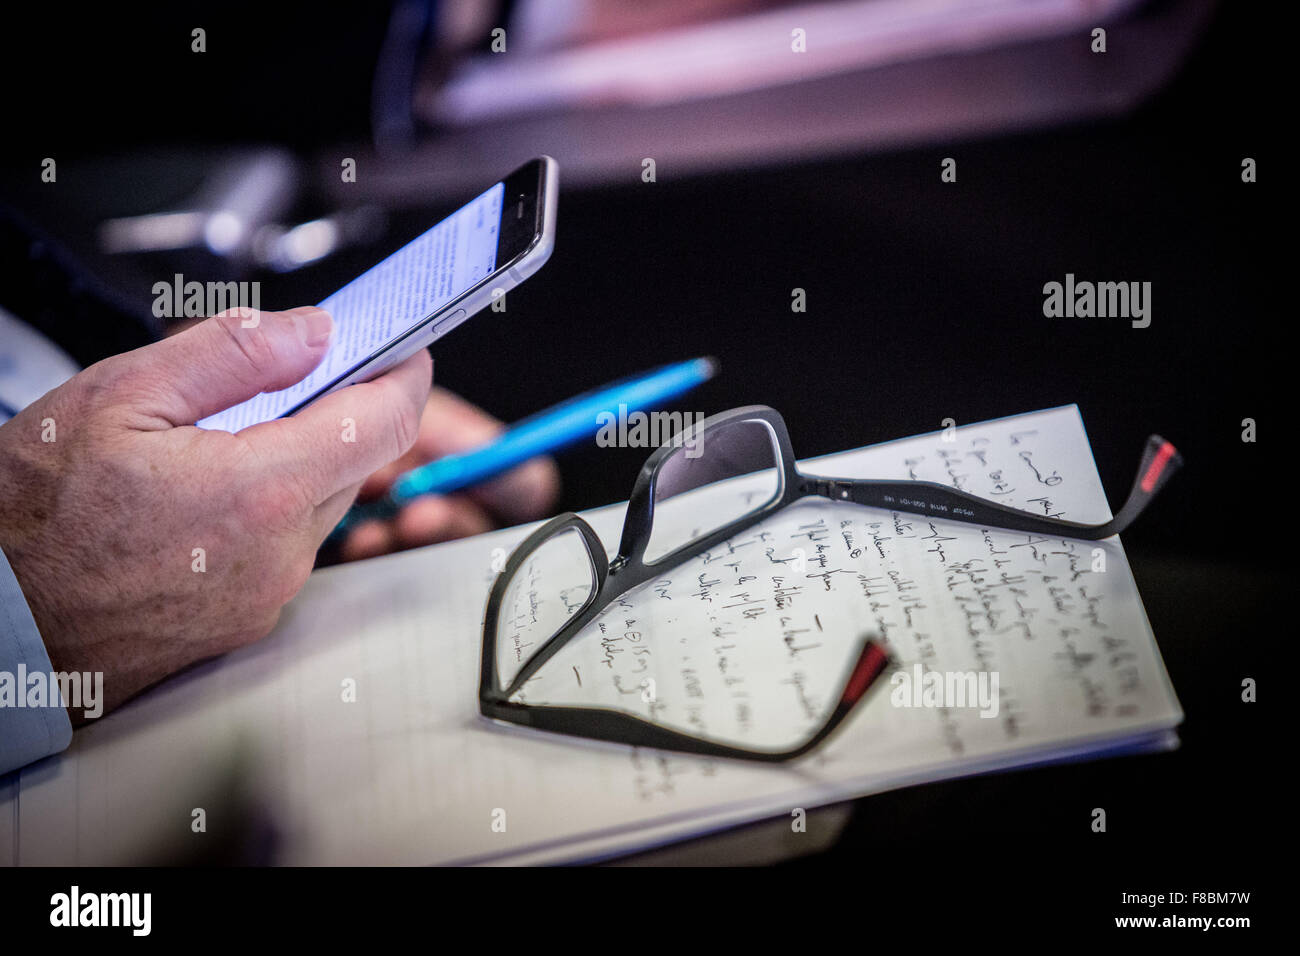 Man using his cell phone during a meeting. - Stock Image